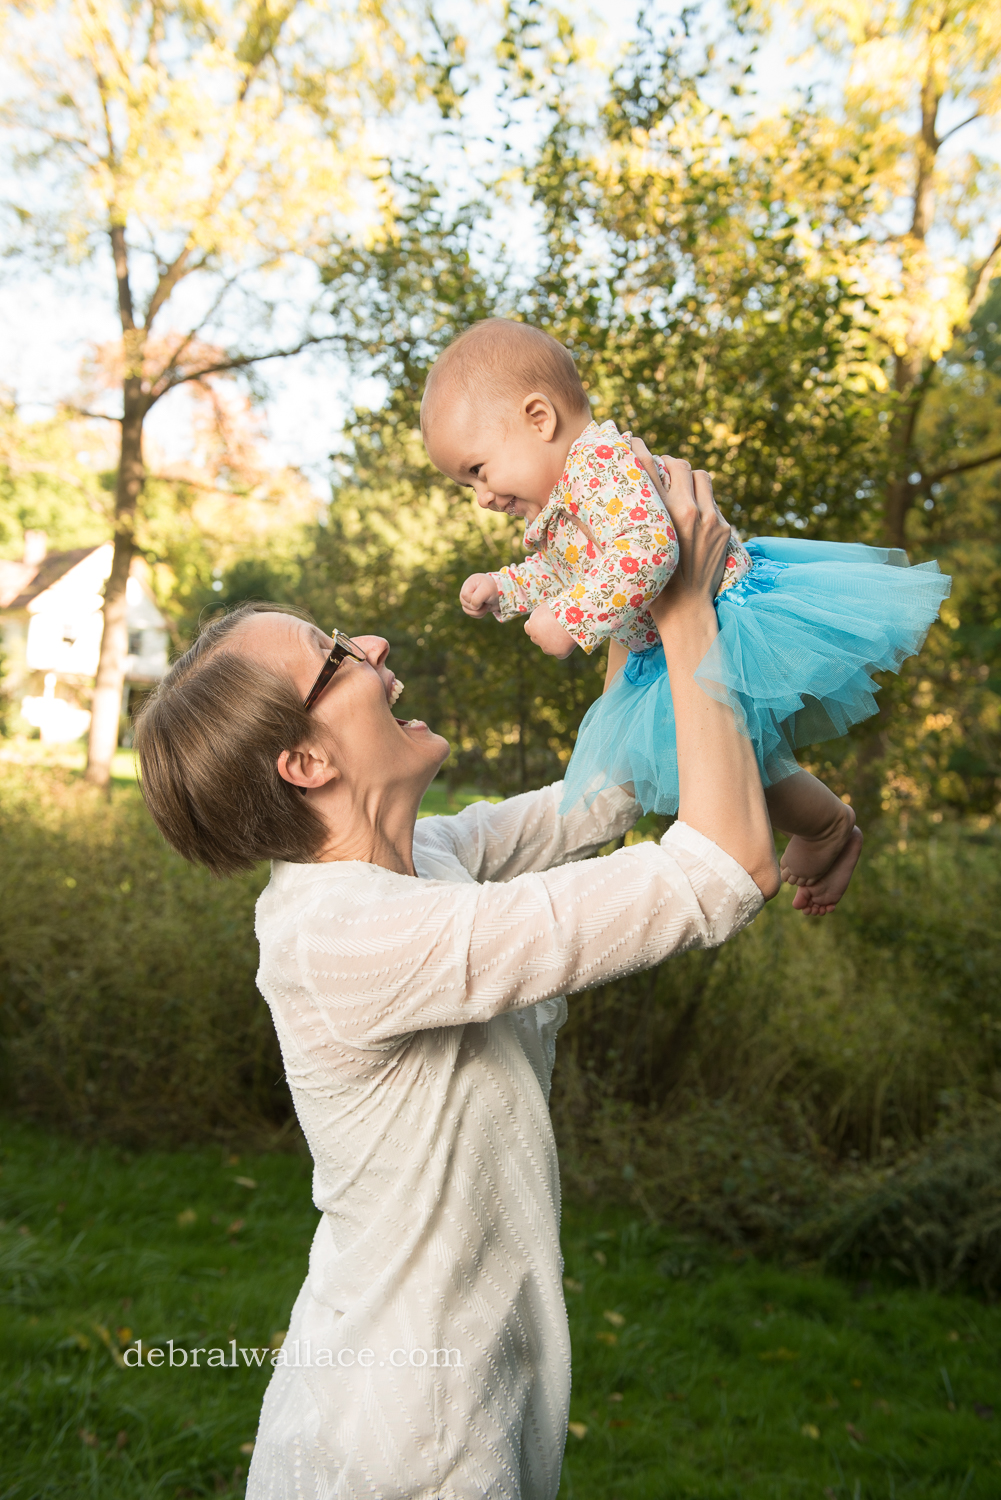 corbetts-glen-candid-family-photography-playful-baby-sibling-photos-0616